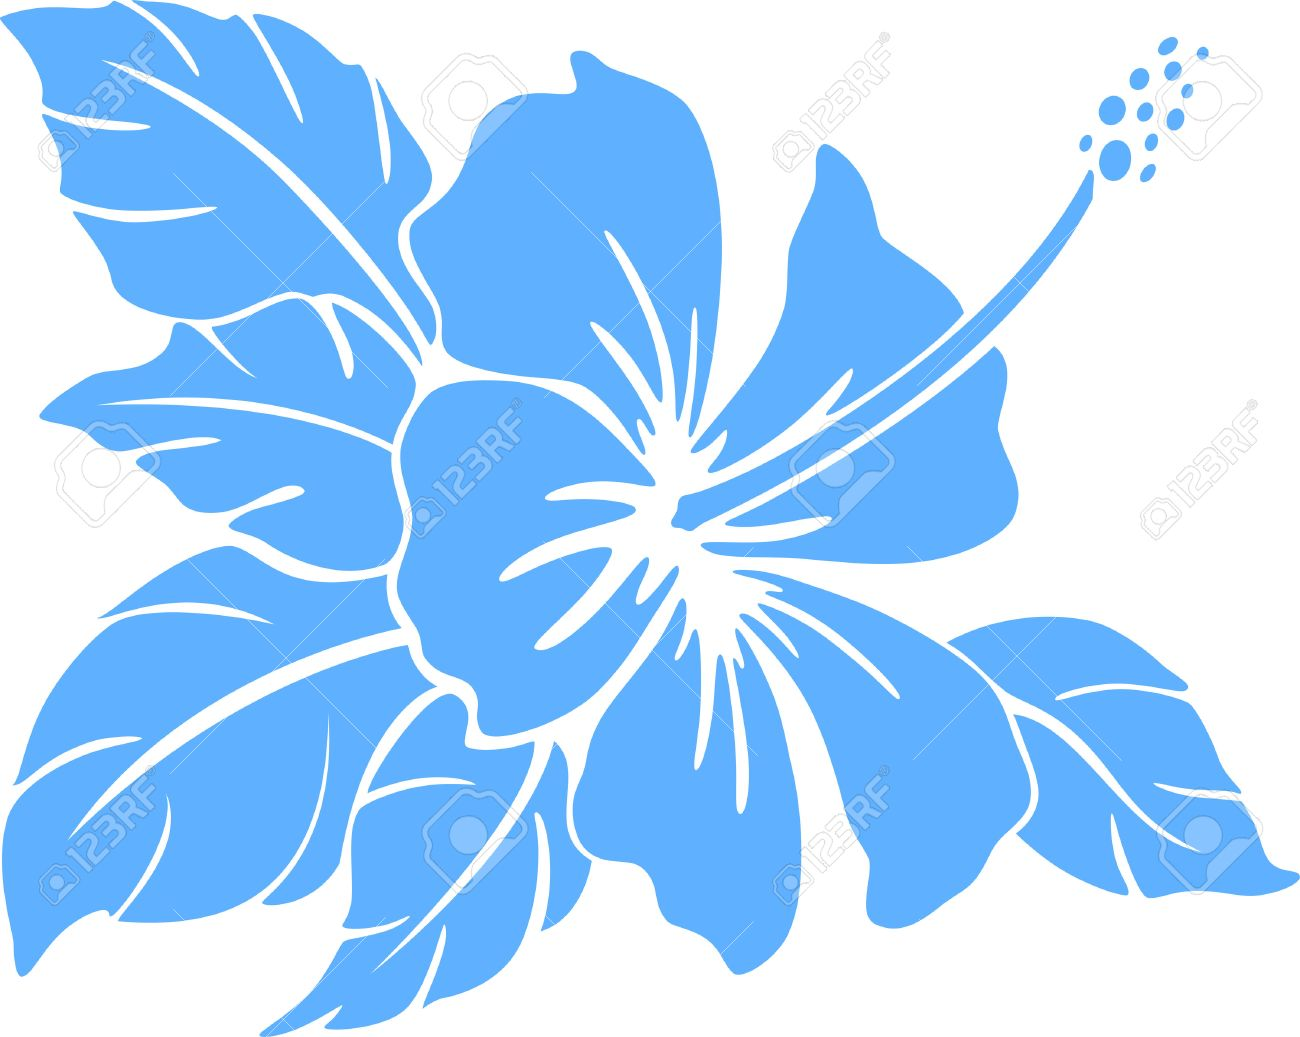 Hibiscus Flower Silhouette On A White Background Royalty Free